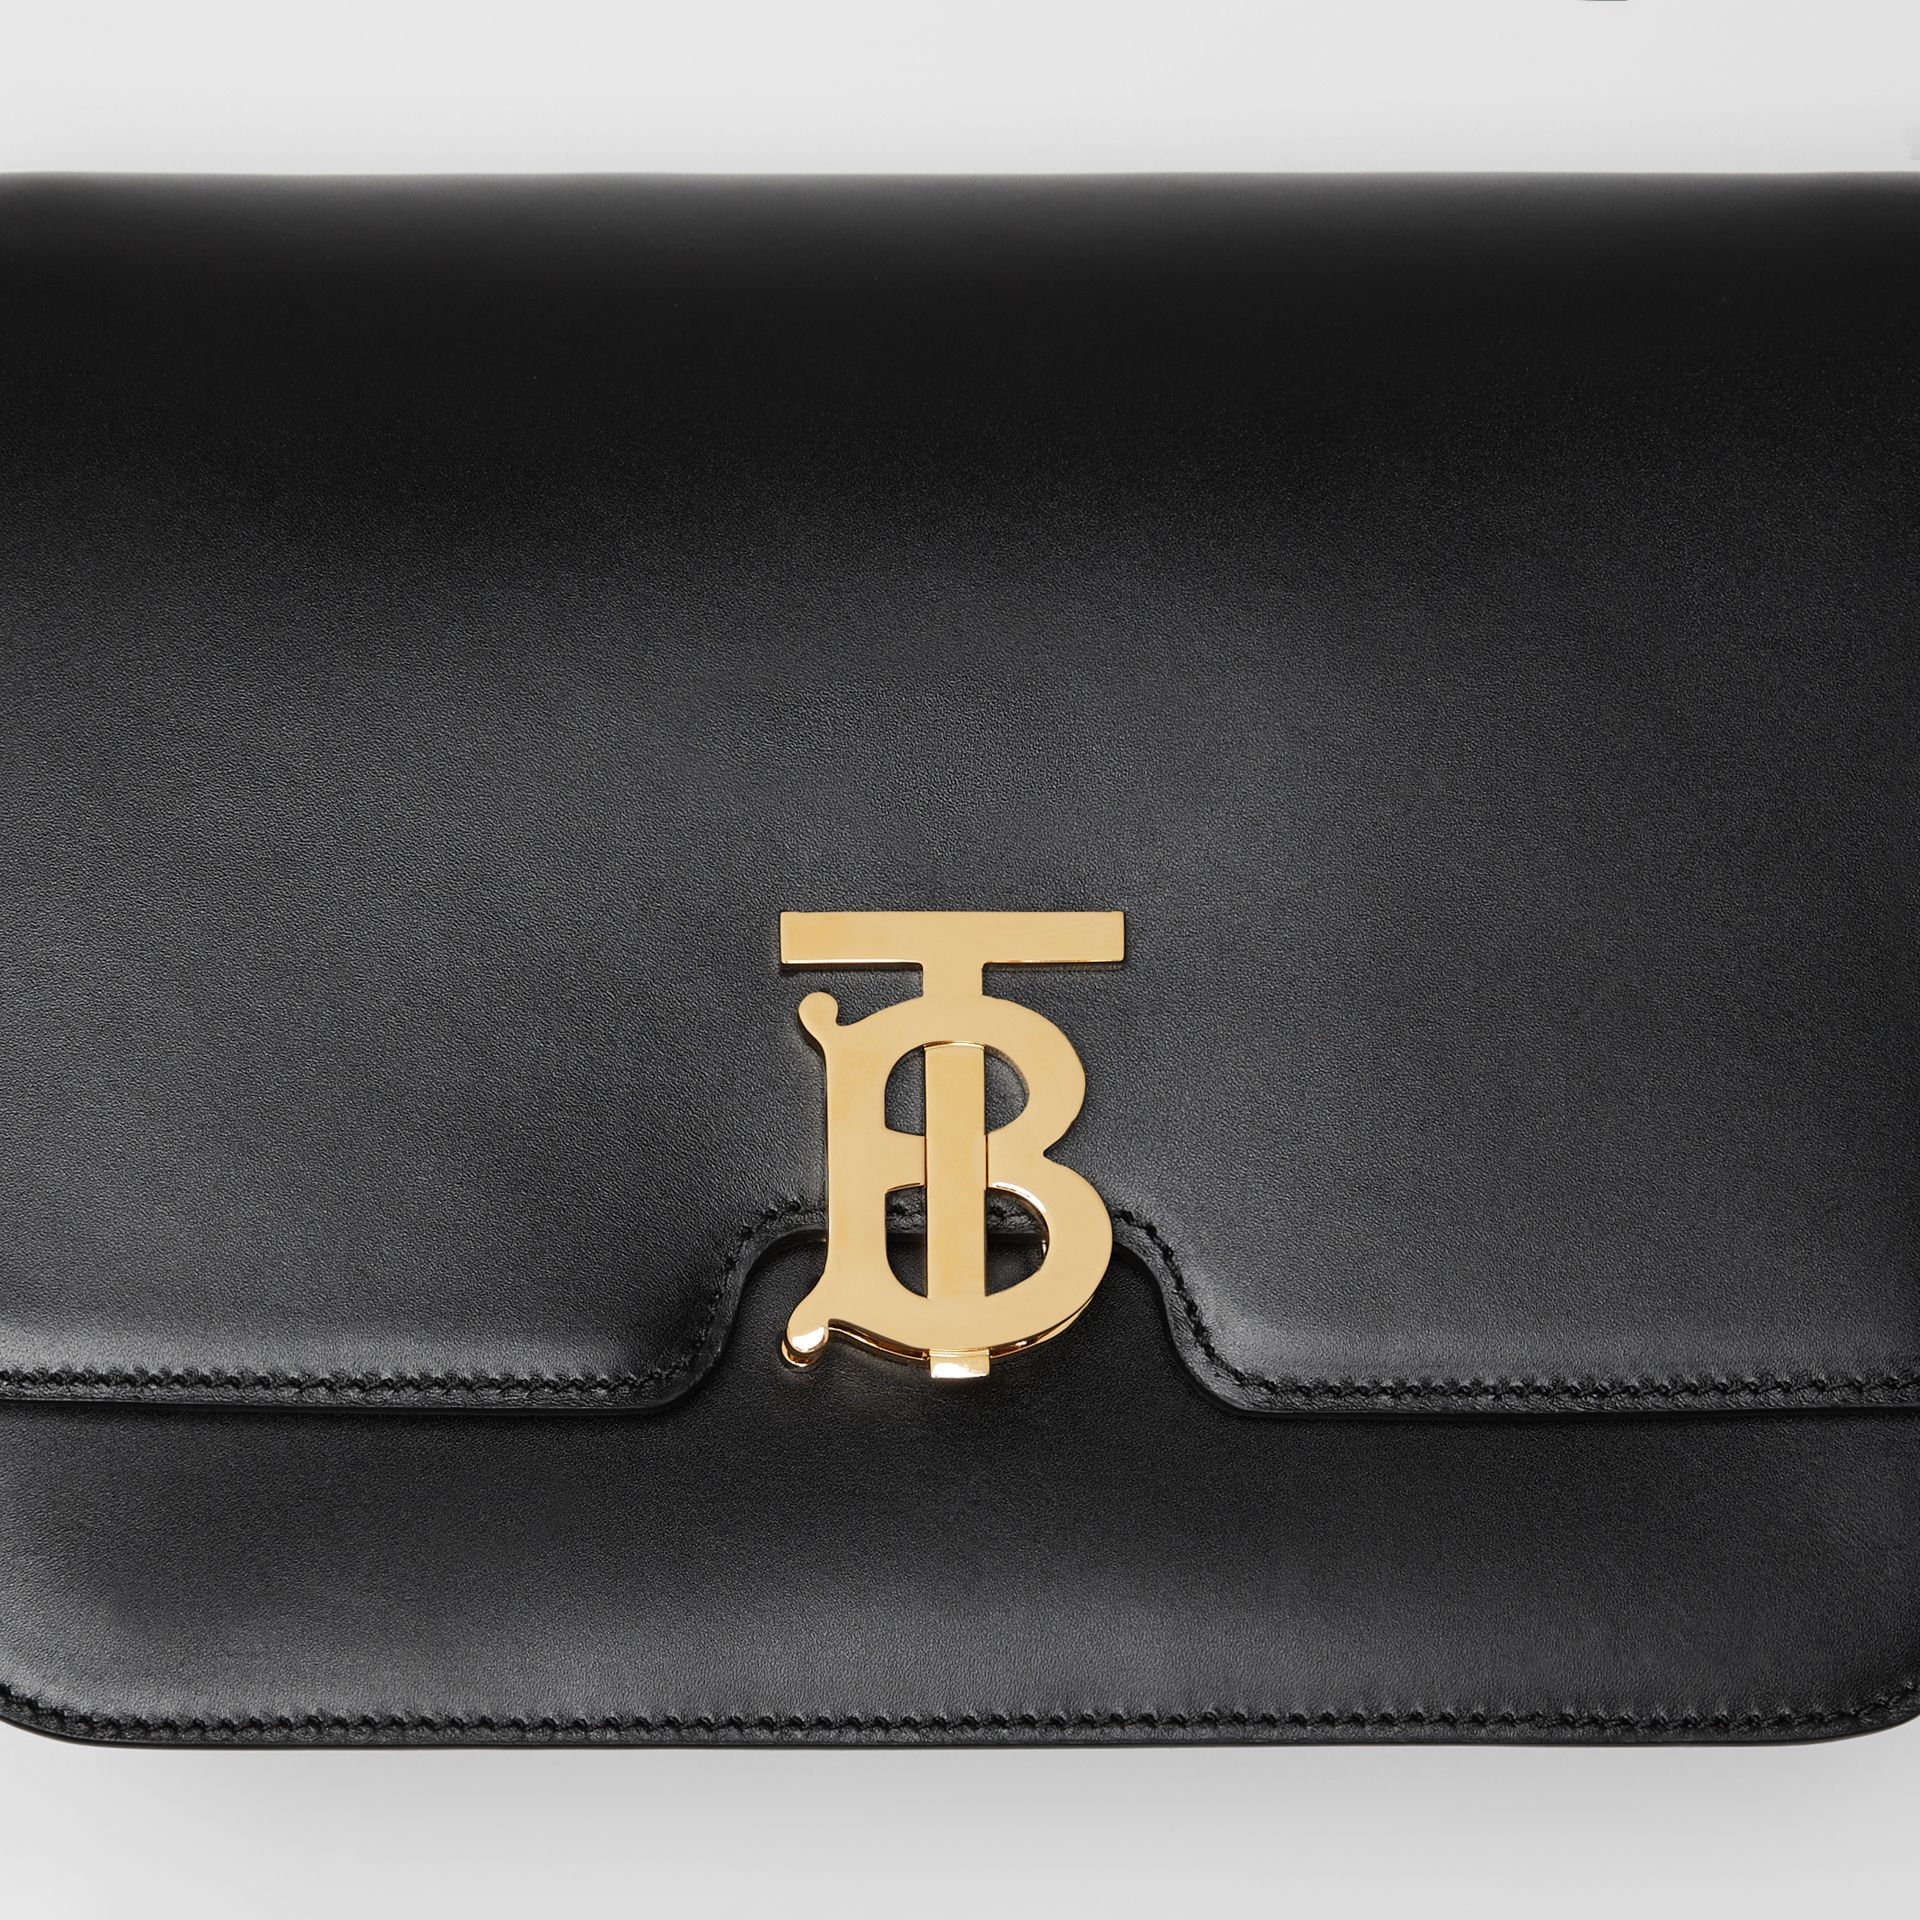 Medium Leather TB Bag in Black - Women | Burberry United Kingdom - gallery image 1